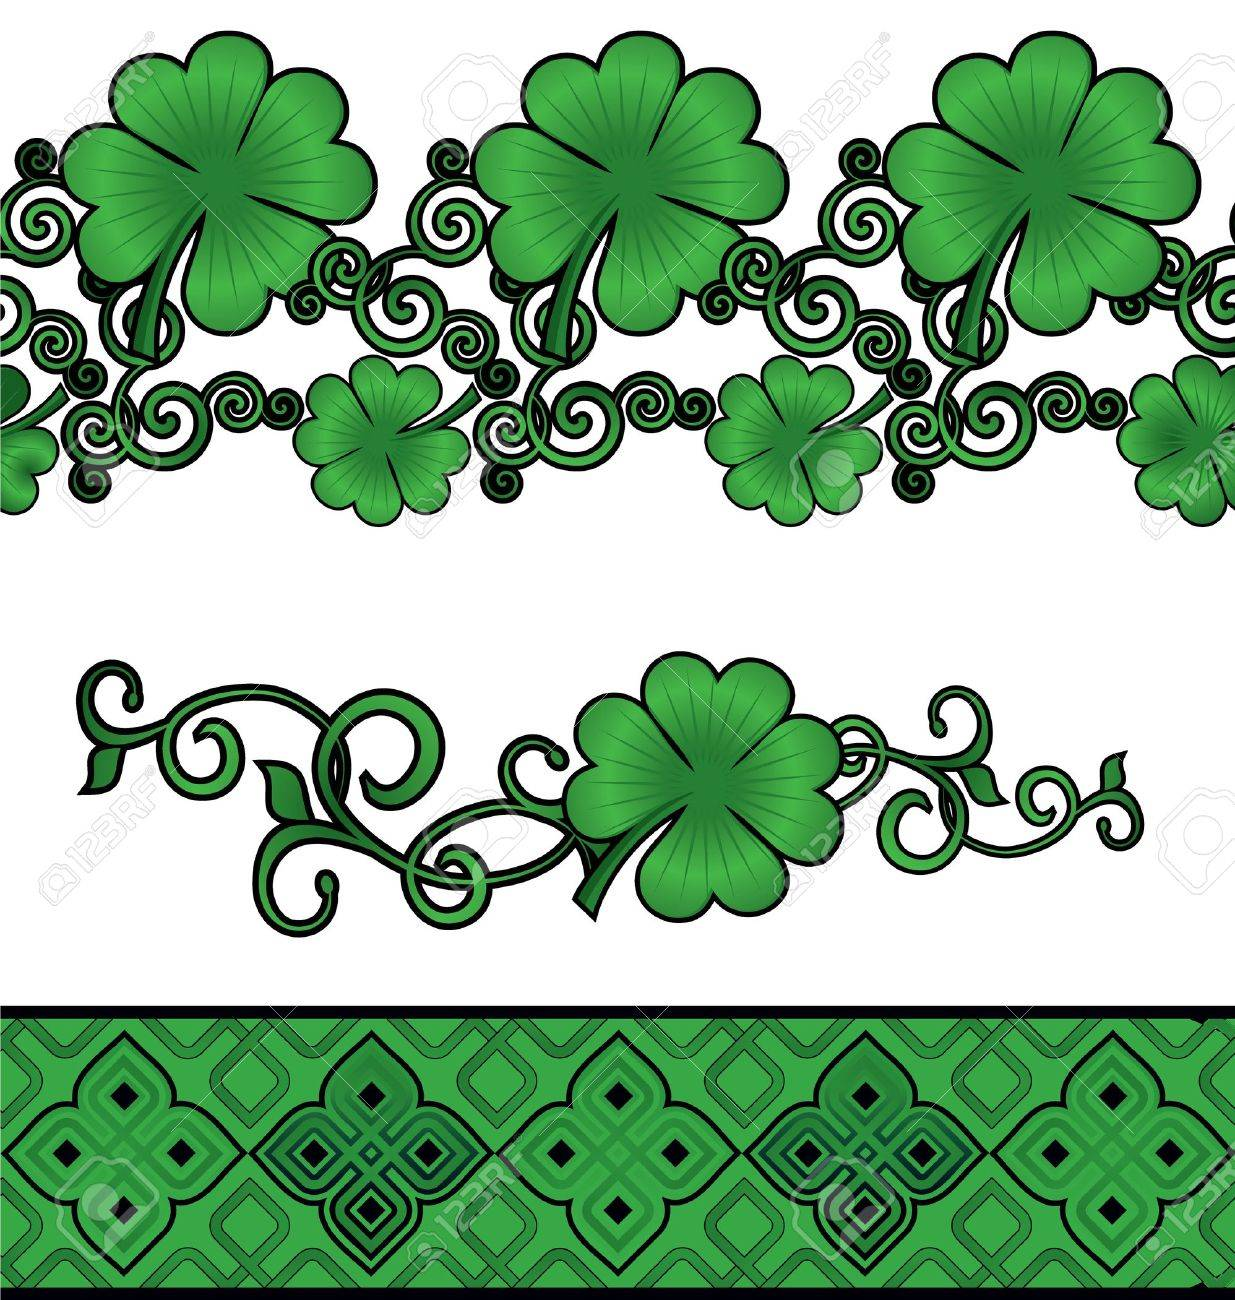 Vector green Patrick's day shamrock or clover decor borders set isolated on white Stock Photo - 14821229